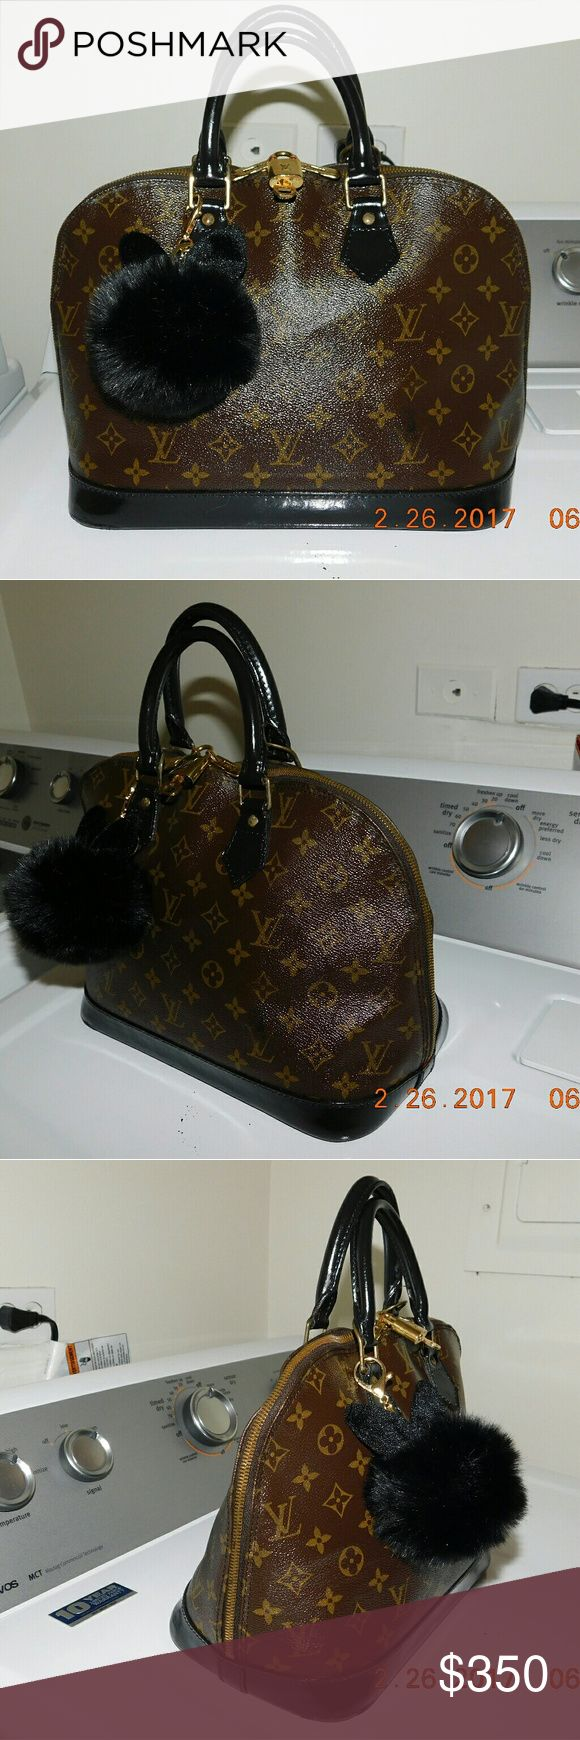 """Louis Vuitton Alma bag Painted and sealed, this alma bag by Louis Vuitton wont ever crack or look any different. Looks brand new """"and improved""""! Louis Vuitton  Bags Satchels"""